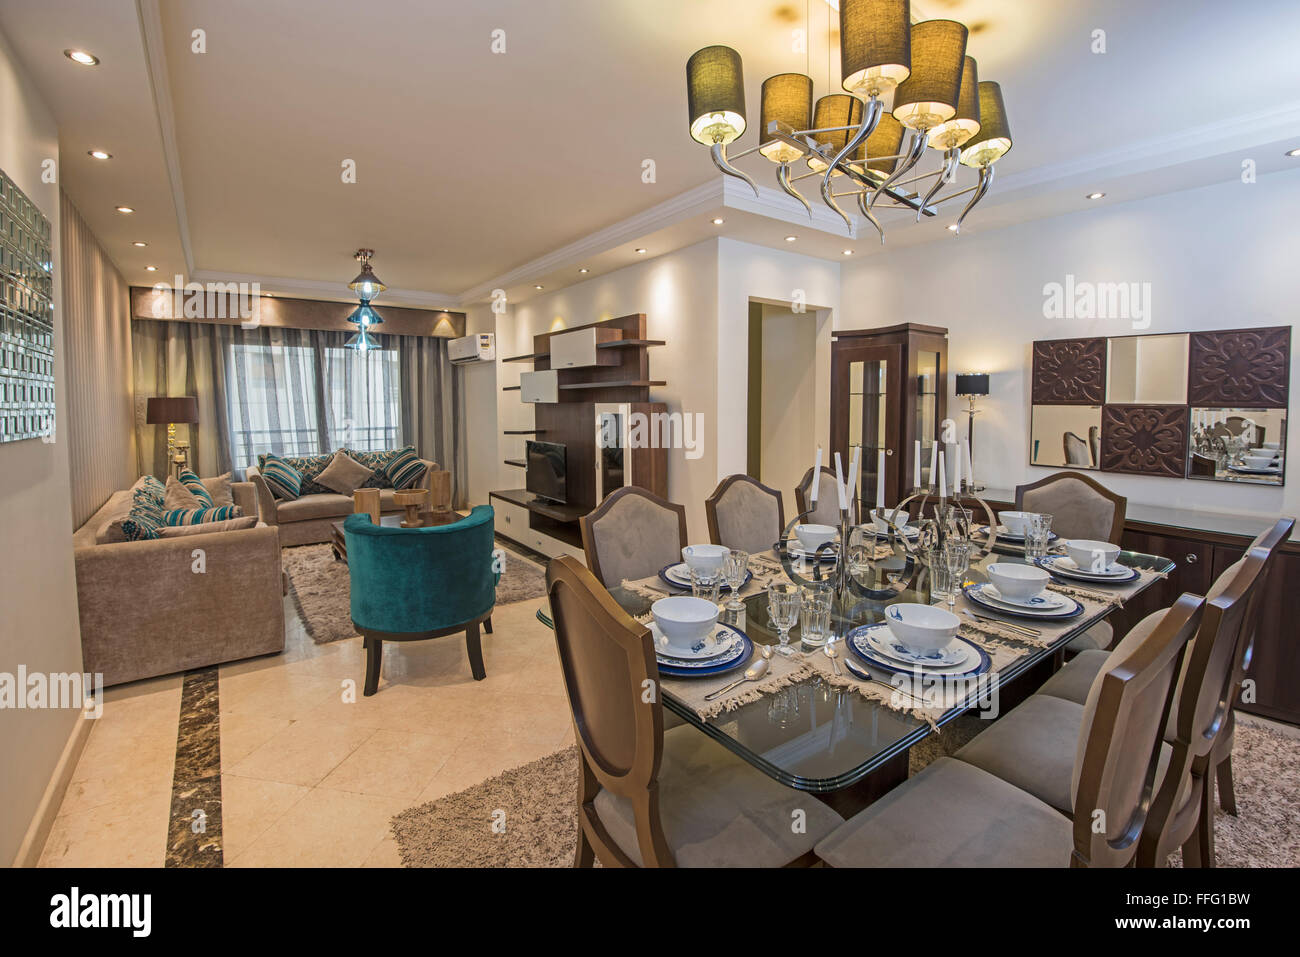 Interior design of a luxury apartment show home living area and stock photo royalty free image - Show houses interior design ...